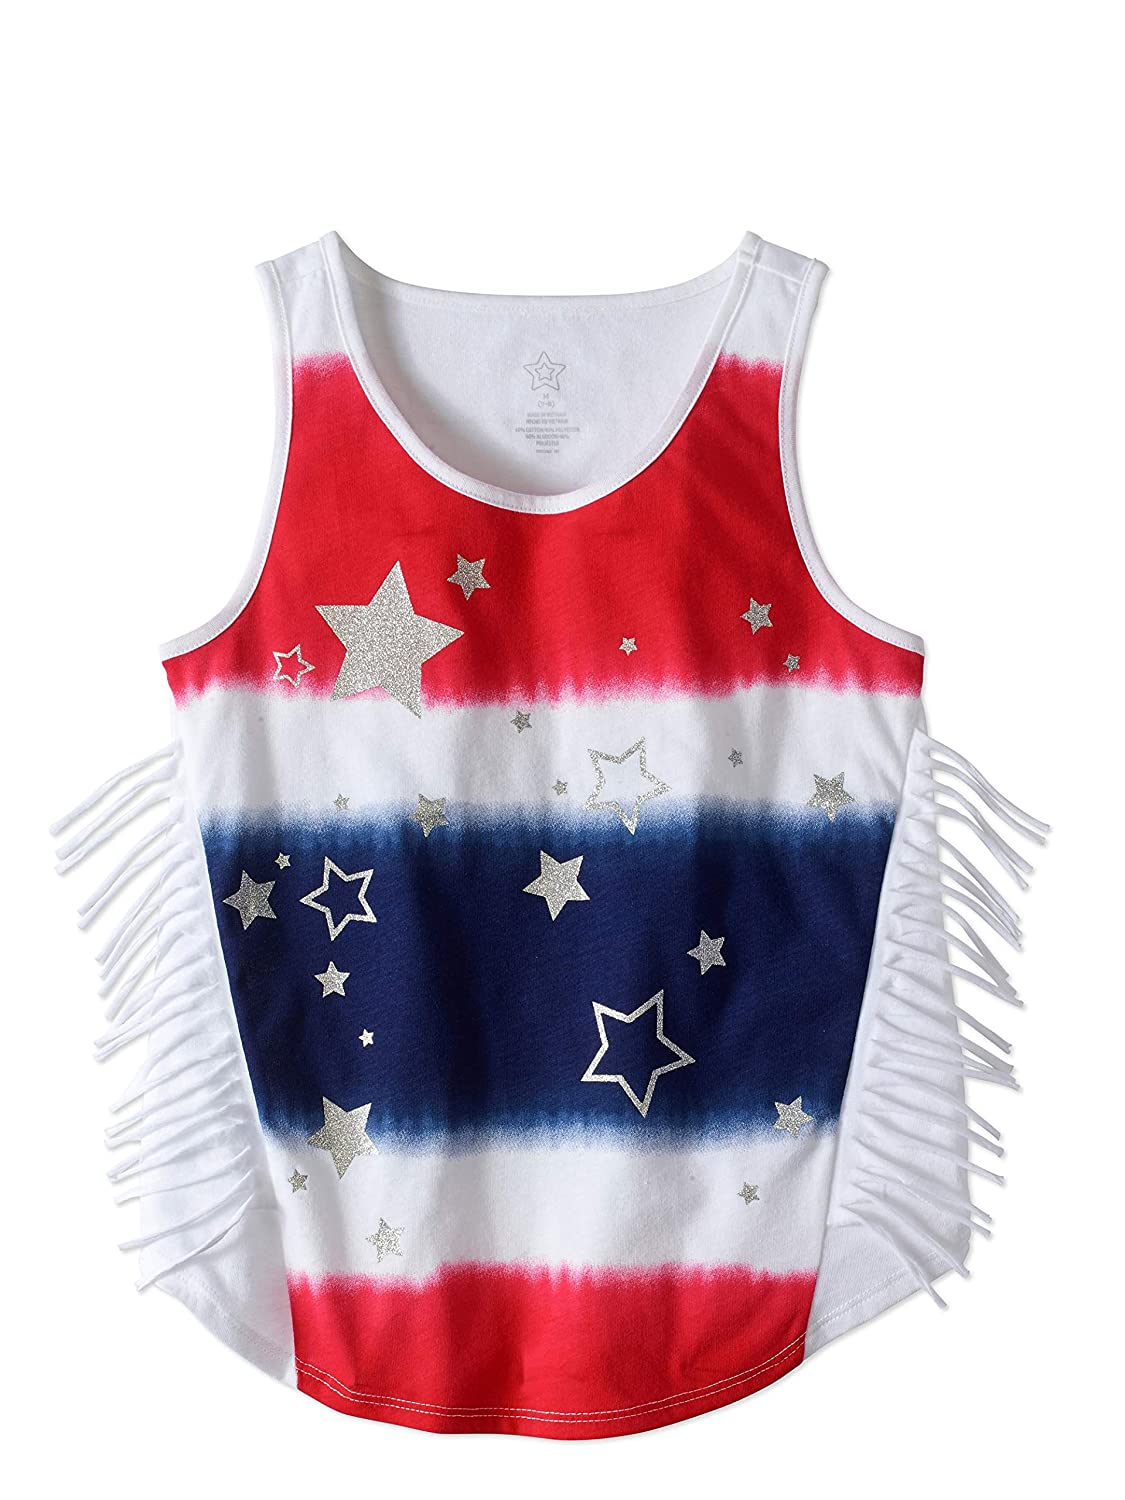 43cf05db04688a These adorable and soft tank top shirts are perfect for a girl s  Independence Day outfit. Available in sizes 4 5